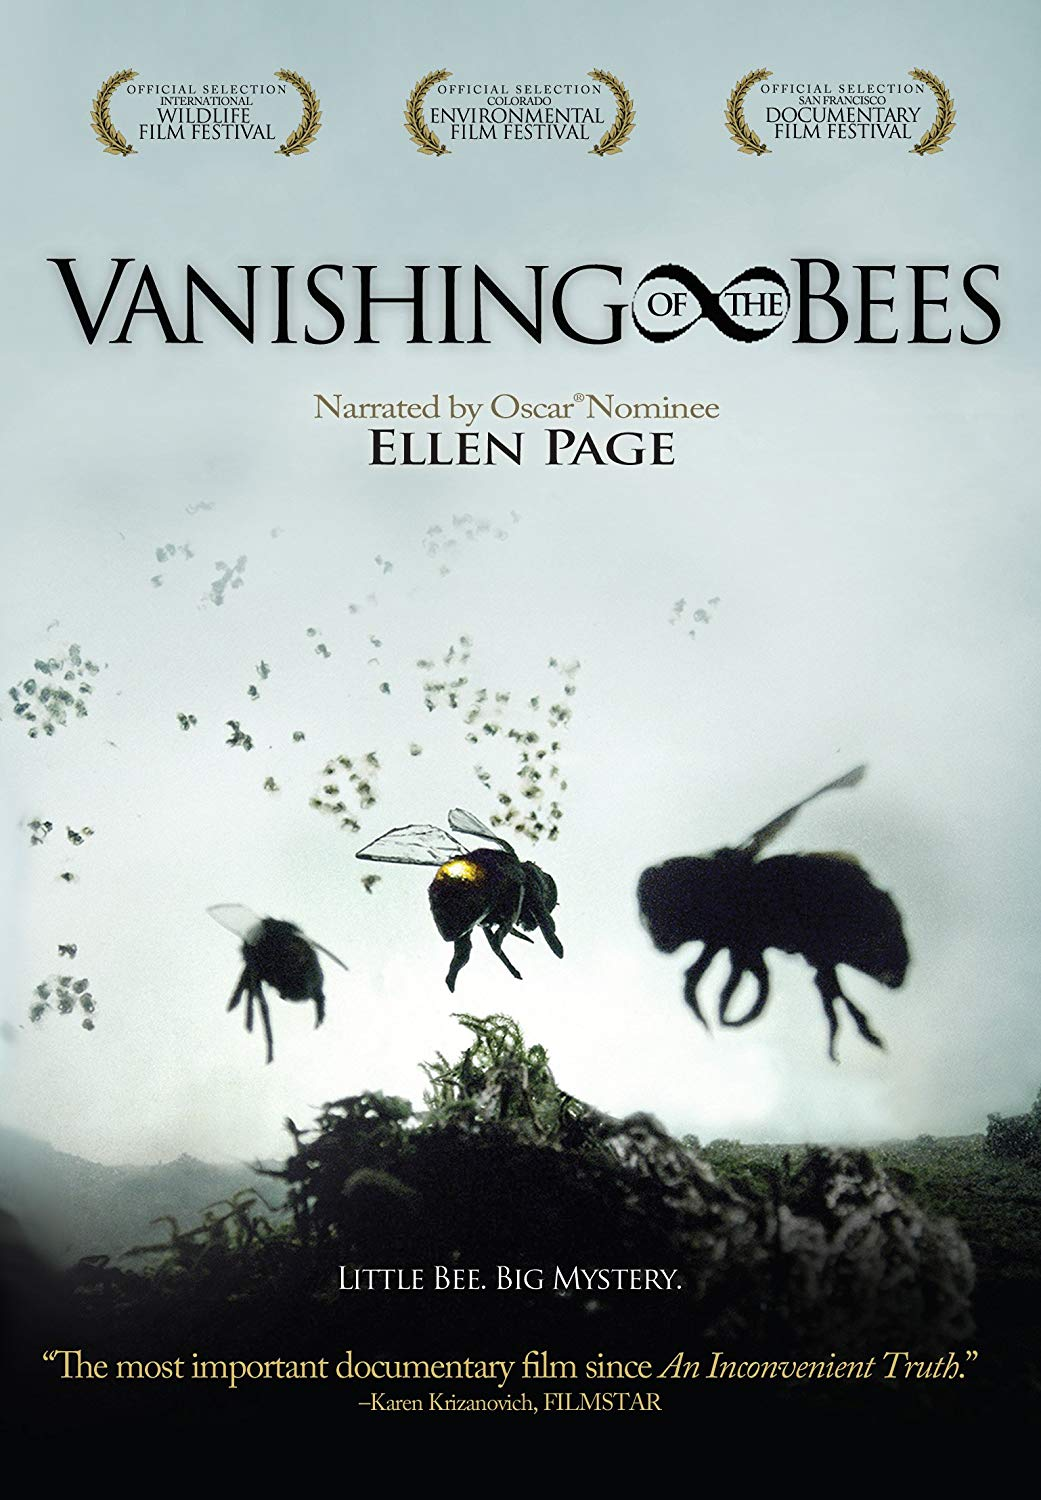 "[Documentary] The Vanishing of the Bees - Honeybees, a keystone species vital to sustaining our ecosystem, are mysteriously disappearing across the planet, literally vanishing from their hives.Known as Colony Collapse Disorder, this phenomenon has brought beekeepers to crisis in an industry responsible for producing apples, broccoli, watermelon, onions, cherries, almonds and a hundred other fruits and vegetables. Commercial honeybee operations pollinate crops that provide one out of every three bites of food on our tables.Narrated by Academy Award nominee Ellen Page, ""Vanishing of the Bees"" follows commercial beekeepers David Hackenberg and Dave Mendes as they strive to keep their bees healthy and fulfill pollination contracts across the U.S. The film explores the struggles they face as the two friends plead their case on Capitol Hill and travel across the Pacific Ocean in the quest to protect their honeybees.Filming across the US, in Europe, Australia and Asia, this documentary examines the alarming disappearance of honeybees and the greater meaning it holds about the relationship between mankind and mother earth. As scientists puzzle over the cause, organic beekeepers indicate alternative reasons for this tragic loss. Conflicting opinions abound and after years of research, a definitive answer has not been found to this harrowing mystery.Following the story for three years, directors George Langworthy and Maryam Henein chronicle the innermost thoughts and feelings of beekeepers and scientists as they fight to preserve the honeybee and make it through another day. Combining interviews from around the world, animation, 50's educational films and breathtaking nature cinematography, George and Maryam present not just a story about Colony Collapse Disorder, but a platform full of solutions, encouraging audiences to be the change they want to see in the world."